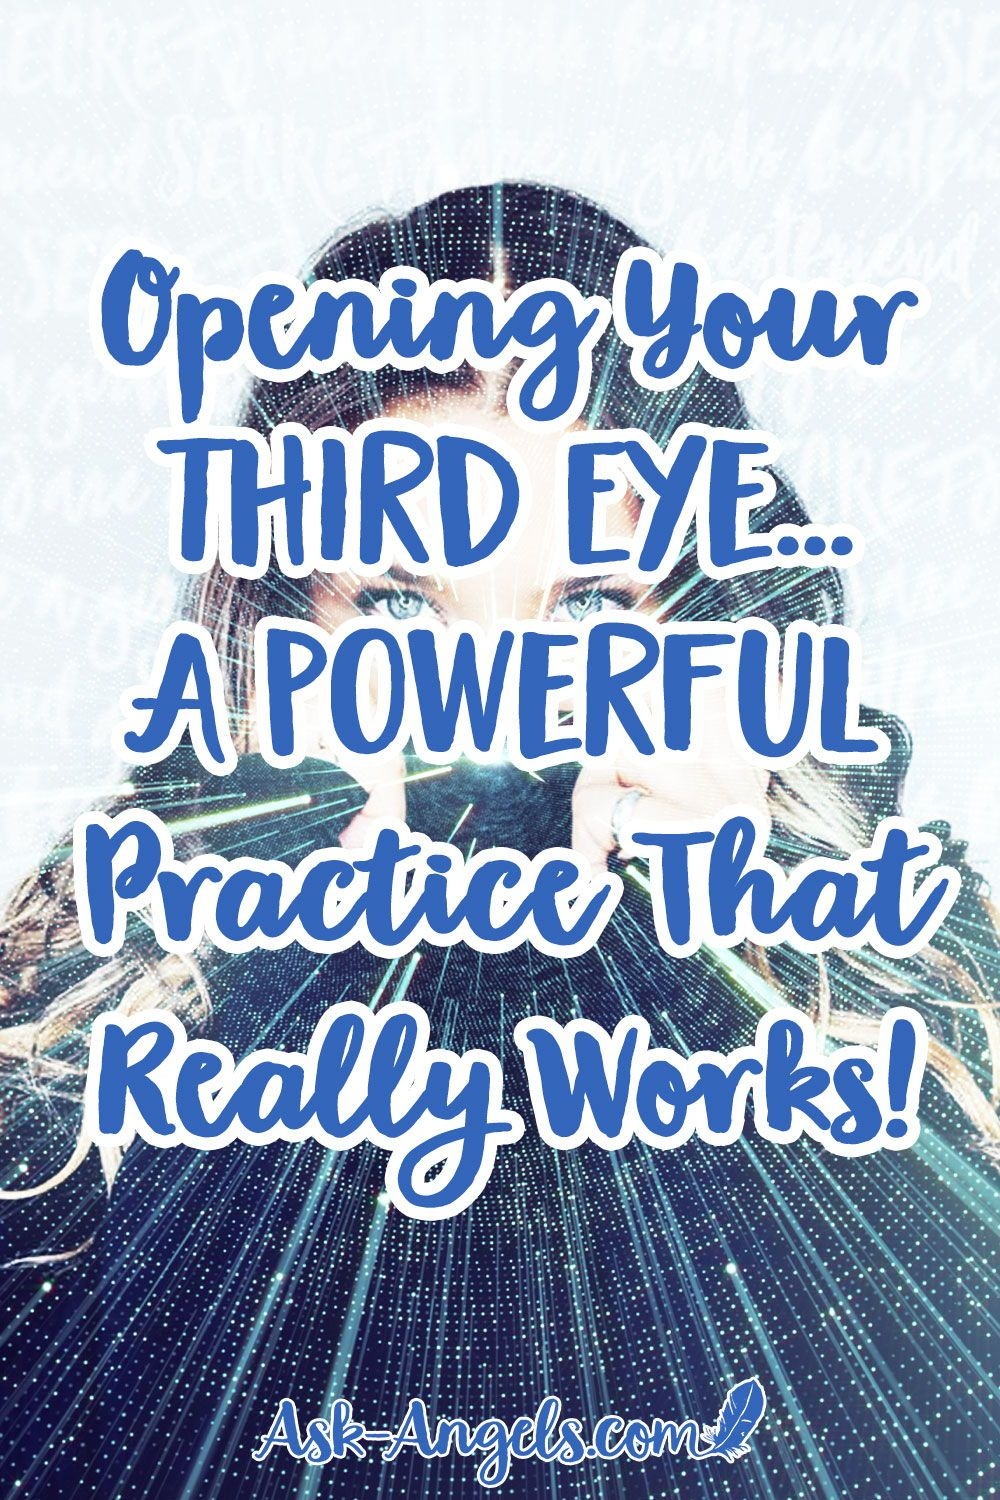 How to Open Your Third Eye - Powerful Step-By-Step Method! - Ask-Angels.com